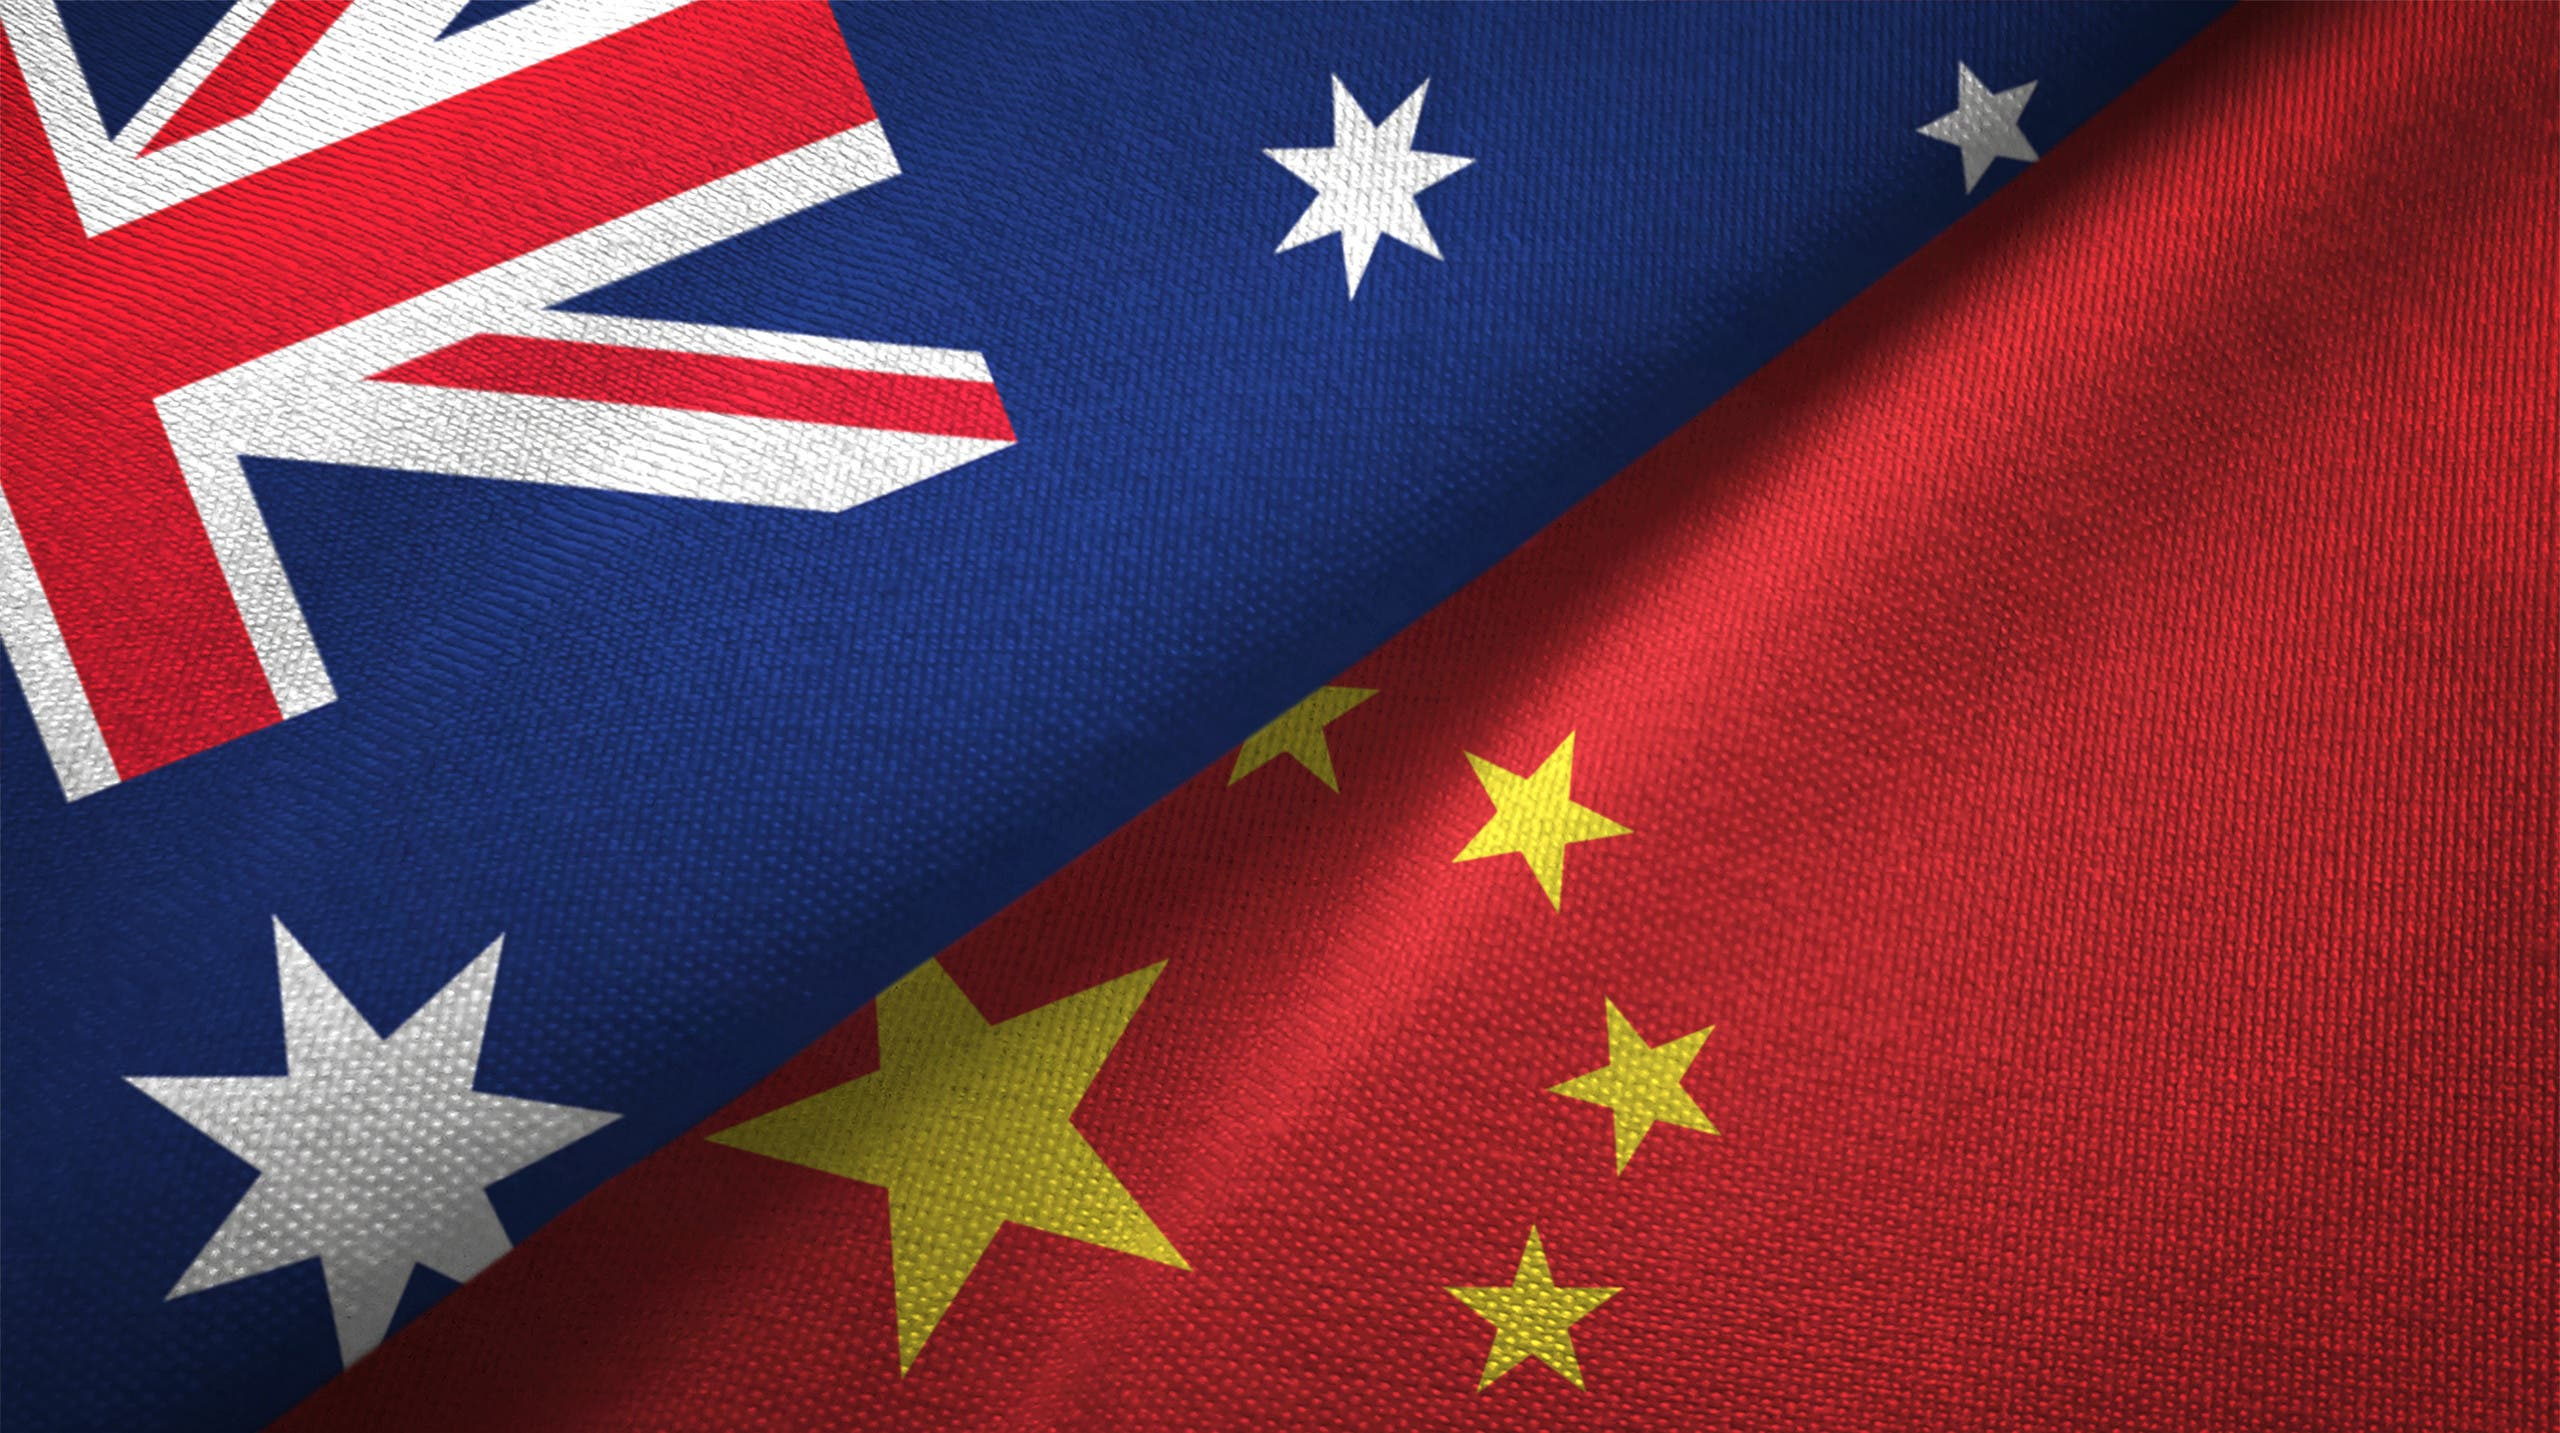 China and Australia flags flying together (File photo)